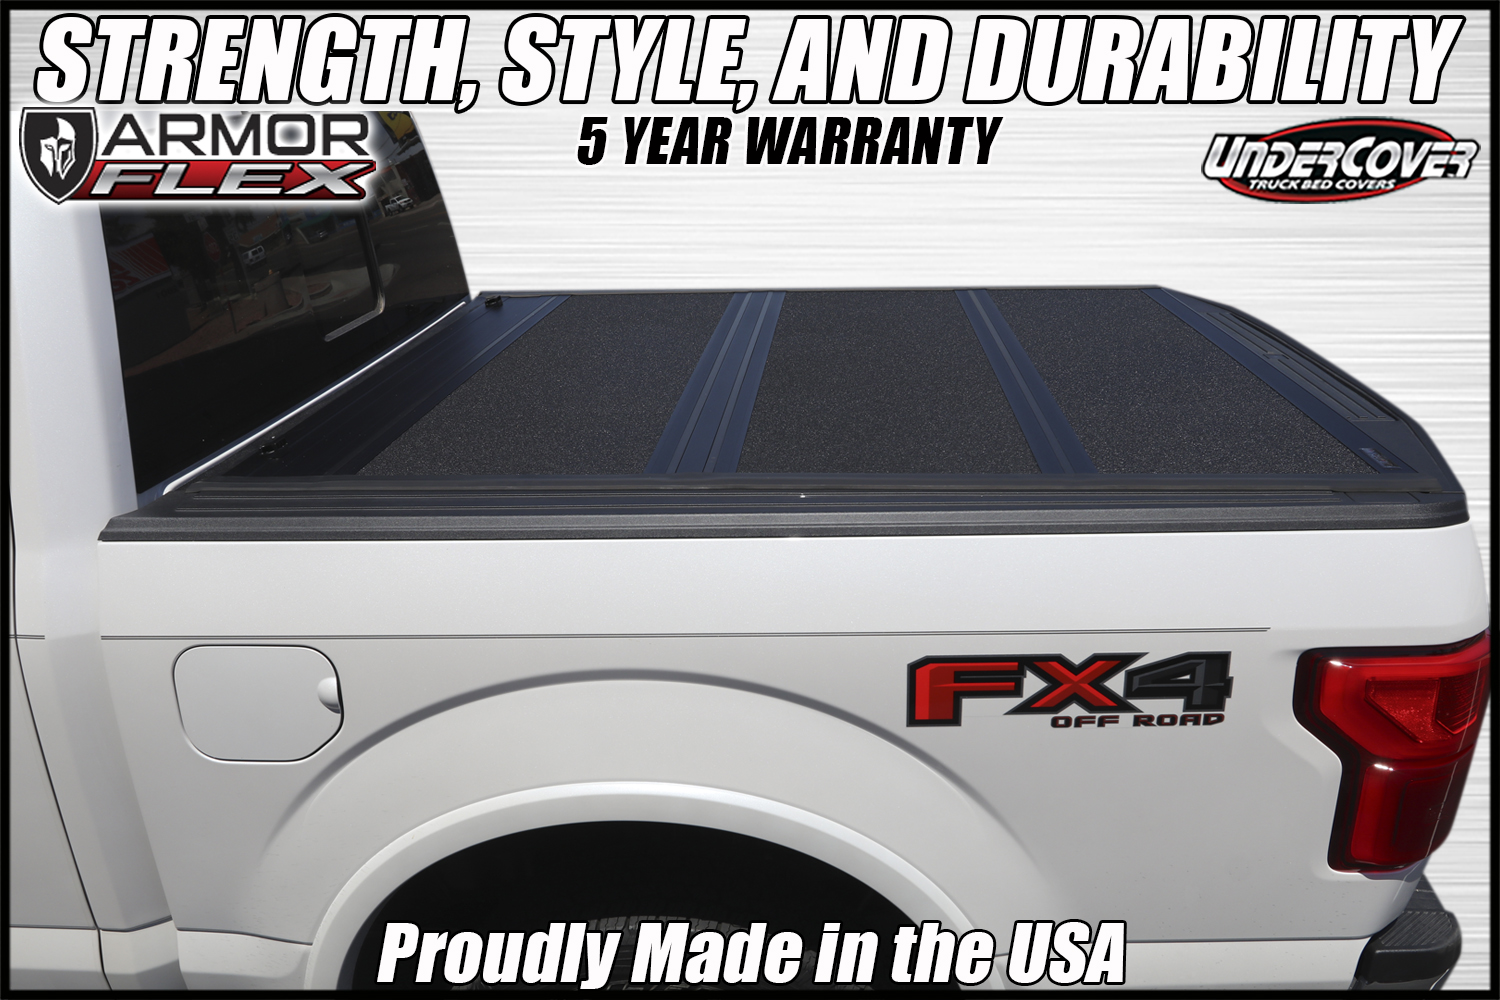 armor flex hard folding truck bed cover by undercover